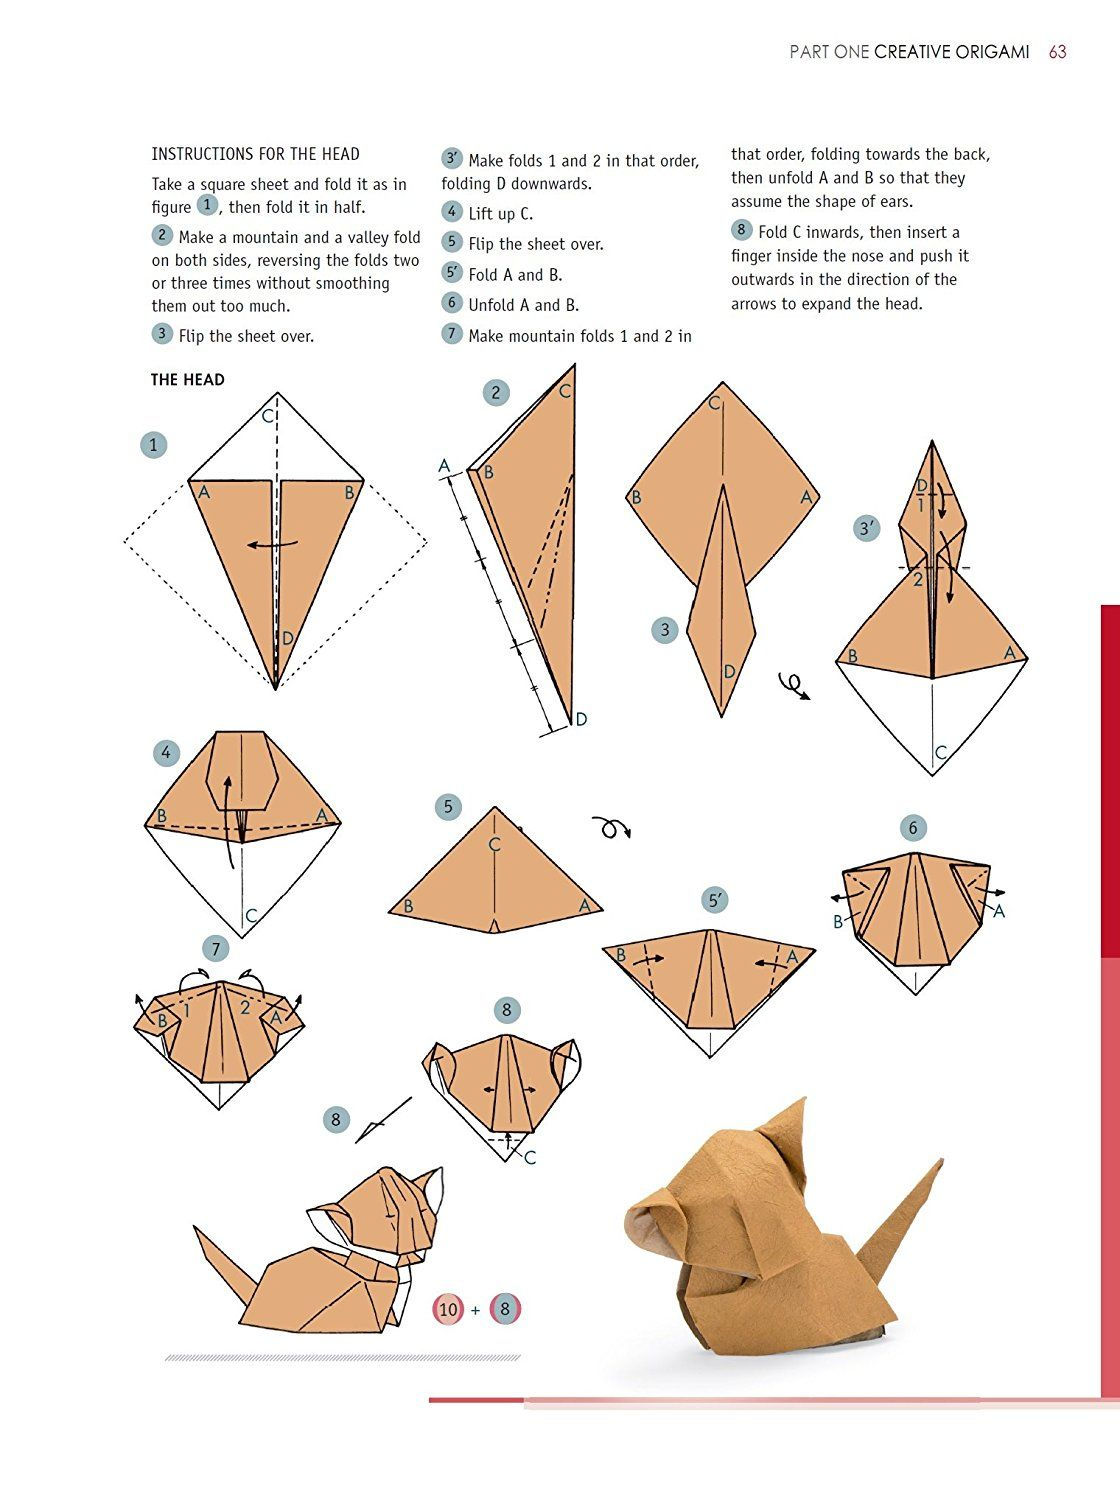 Fabulous Labeled Scorpion Diagram Diagrams Showing How Cover Page The Origami Wiring 101 Capemaxxcnl